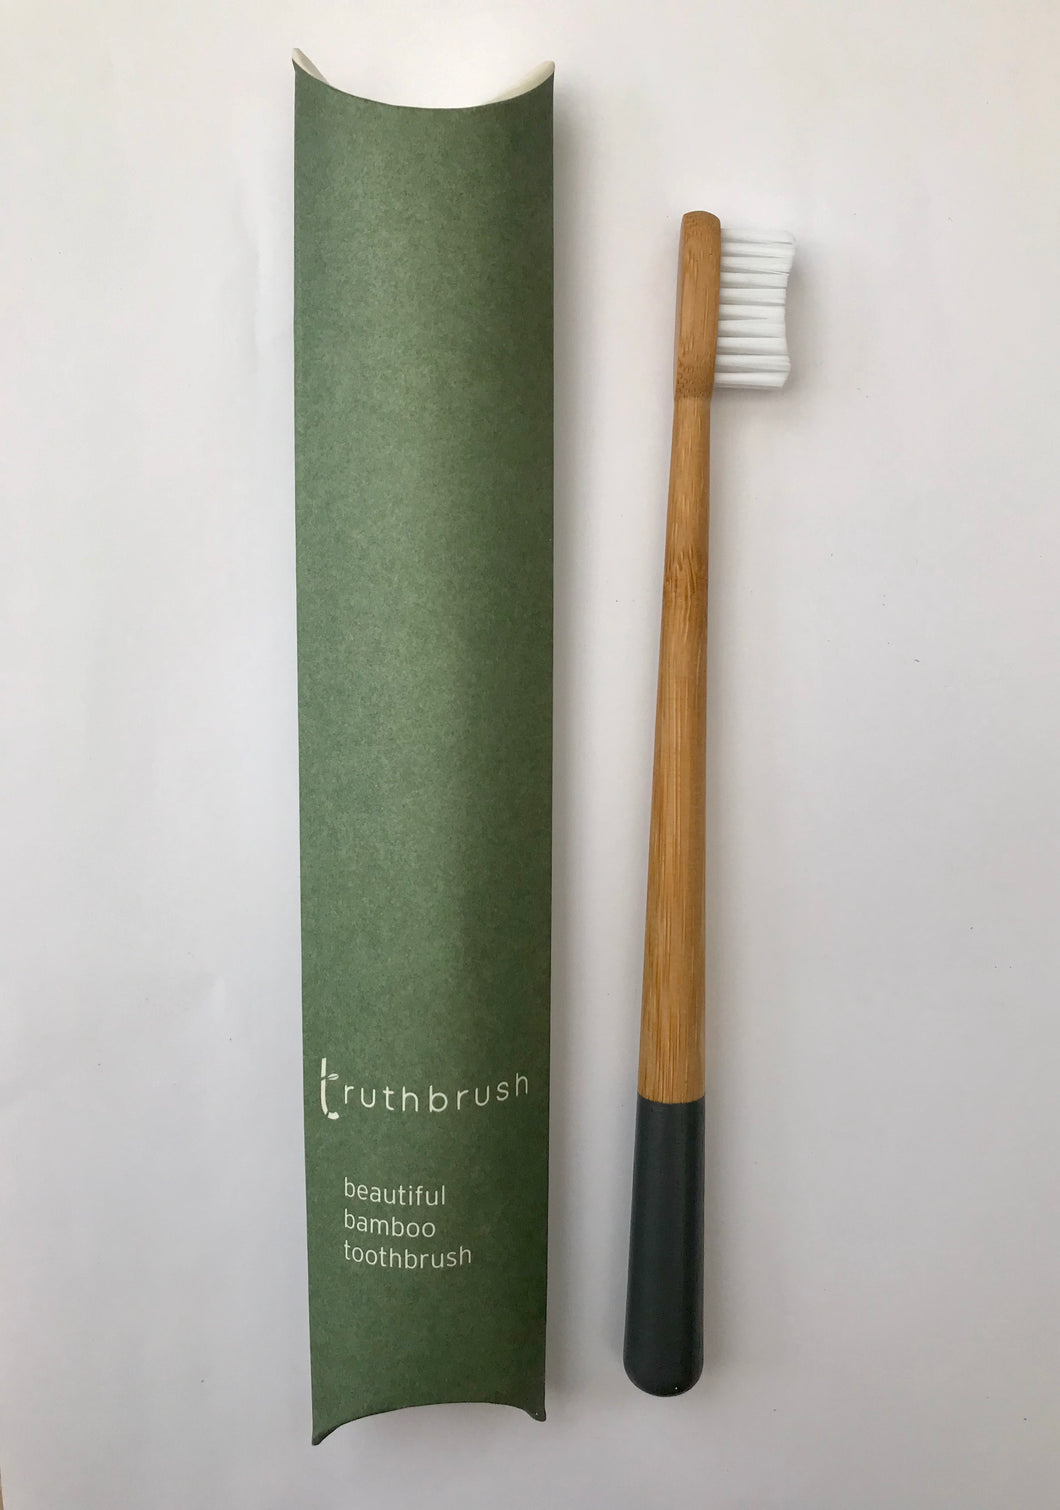 The Truthbrush in Storm Grey